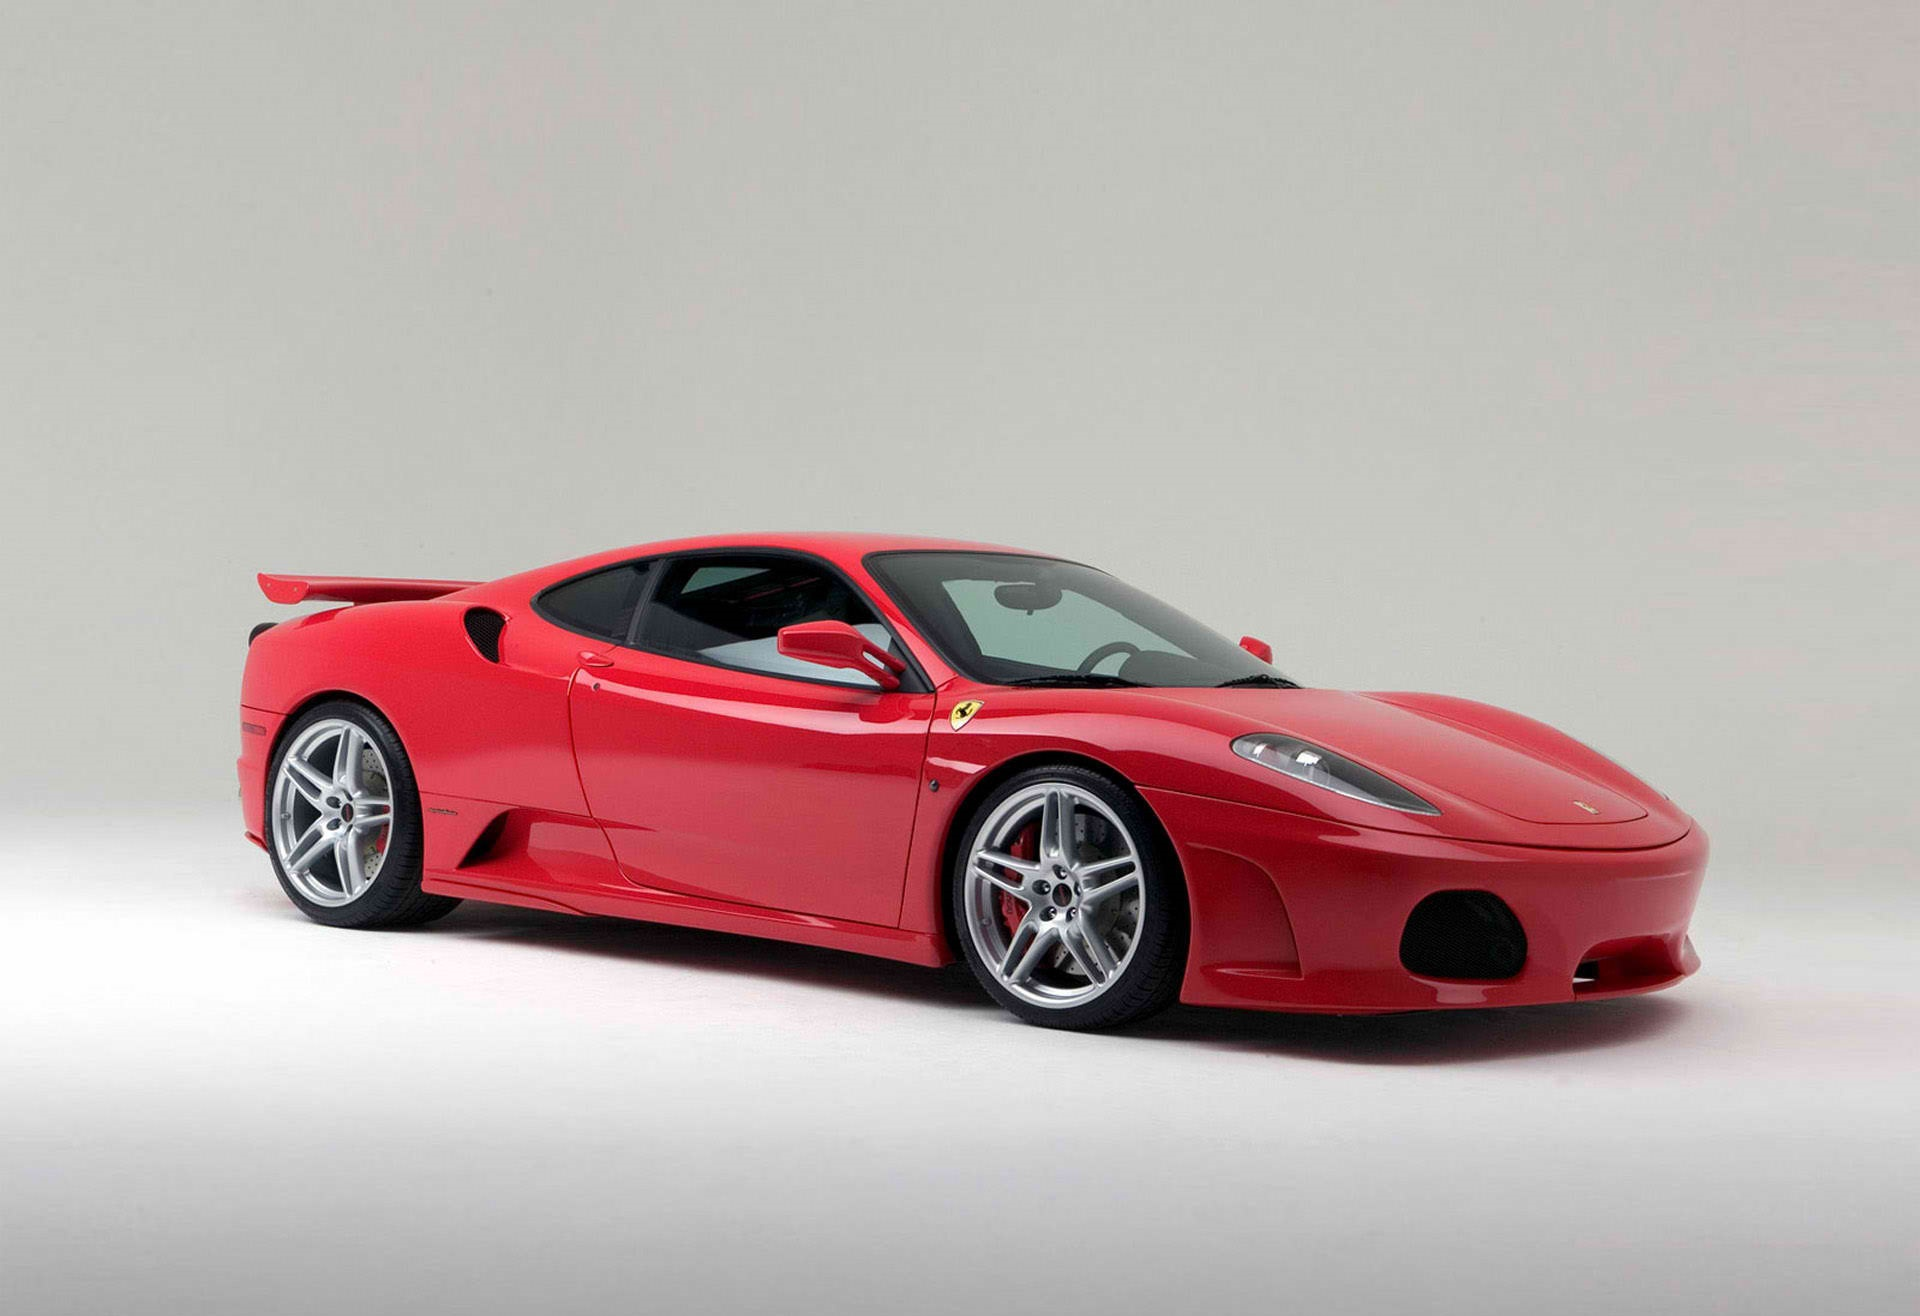 Ferrari F430 Replica Body Kit